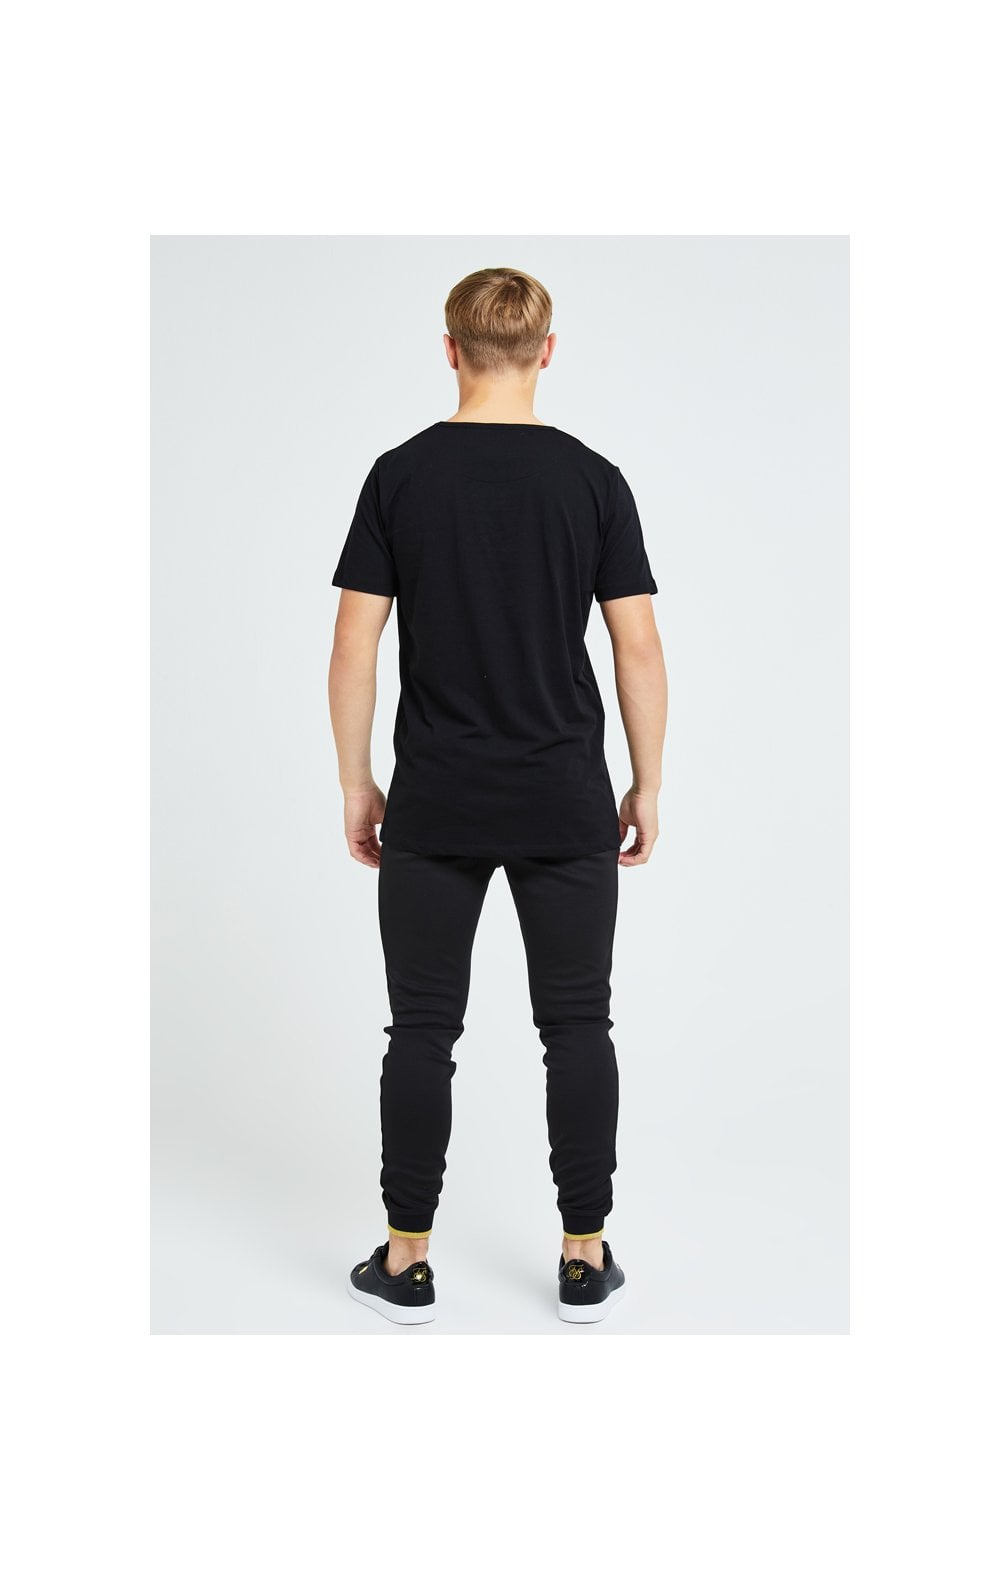 Illusive London Sovereign Tee - Black & Gold (5)